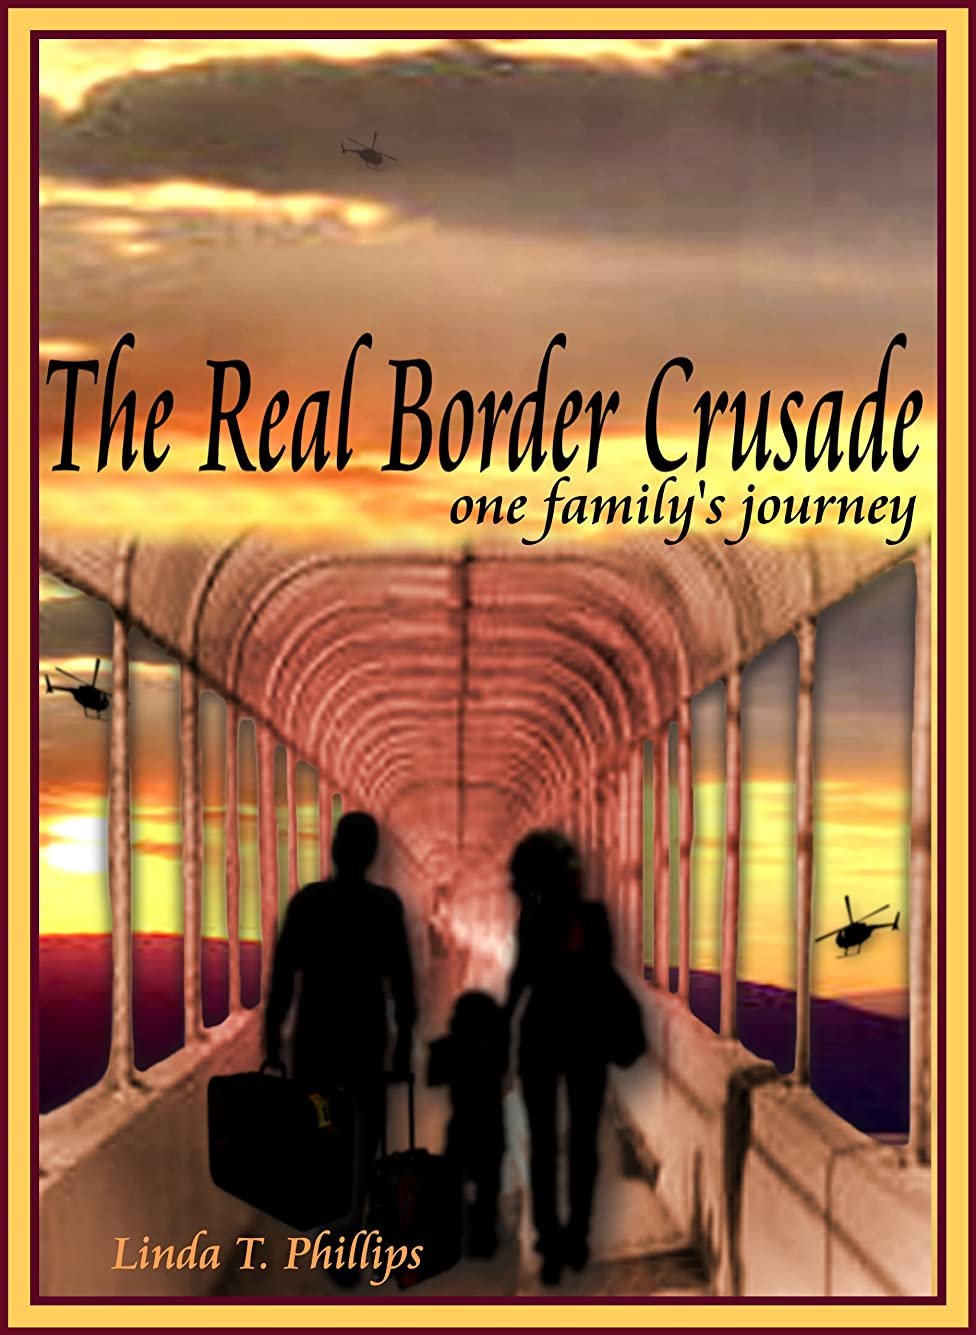 害虫エンティティペンフレンドThe Real Border Crusade, one family's journey (English Edition)